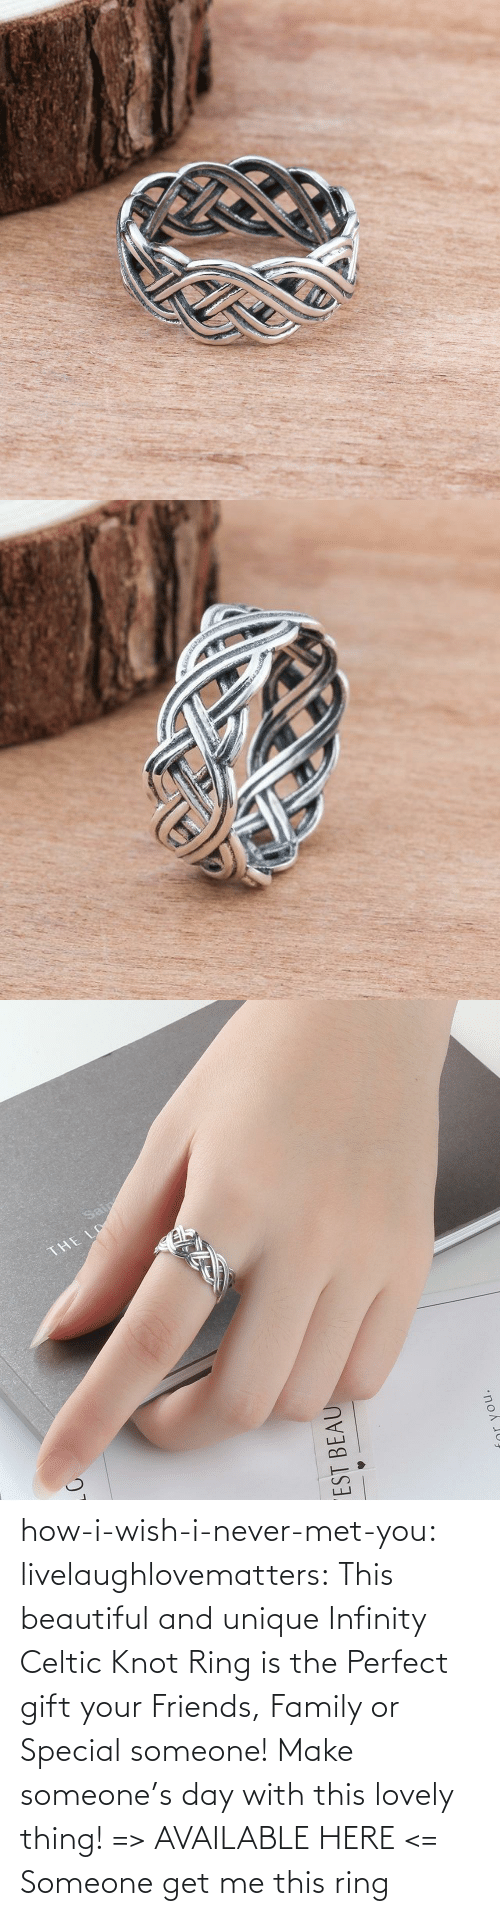 Knot: how-i-wish-i-never-met-you: livelaughlovematters:  This beautiful and unique Infinity Celtic Knot Ring is the Perfect gift your Friends, Family or Special someone! Make someone's day with this lovely thing! => AVAILABLE HERE <=    Someone get me this ring